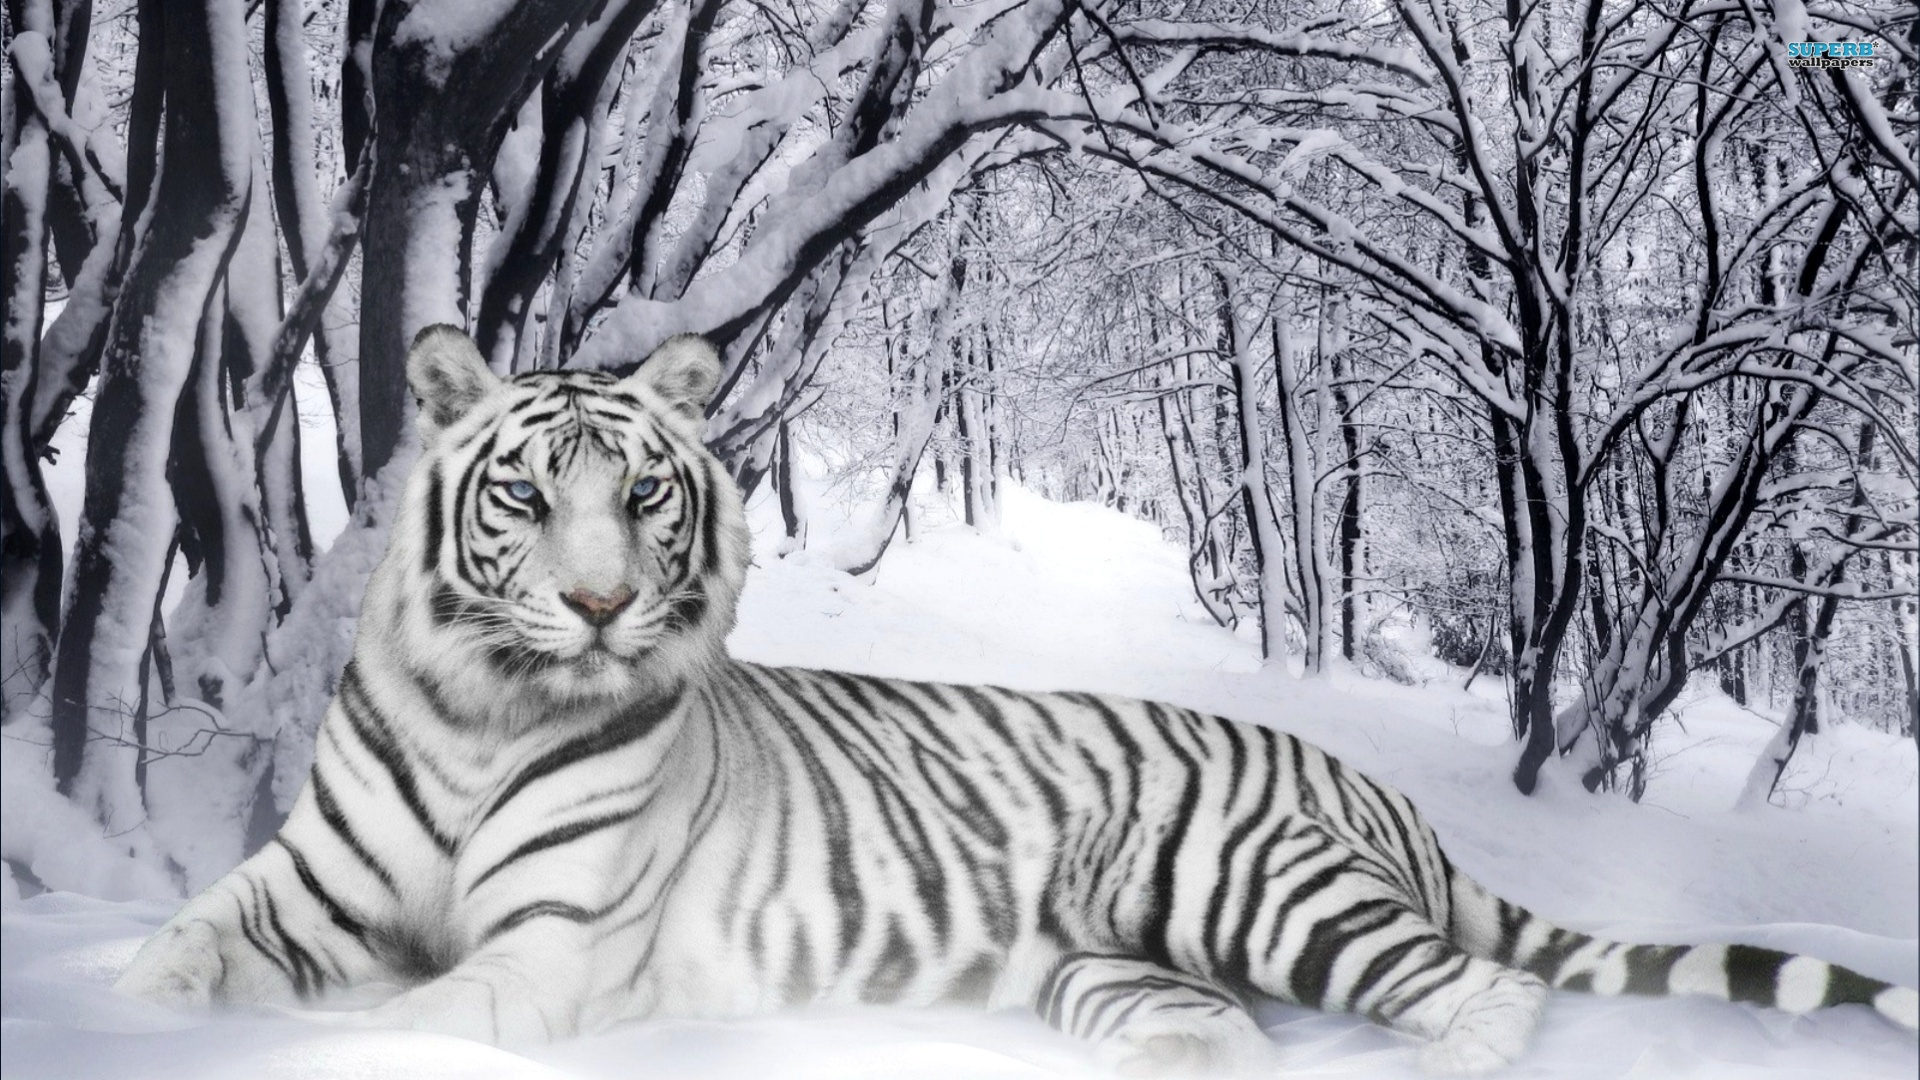 white tiger with blue eyes in snow wallpaper best hd wallpaper